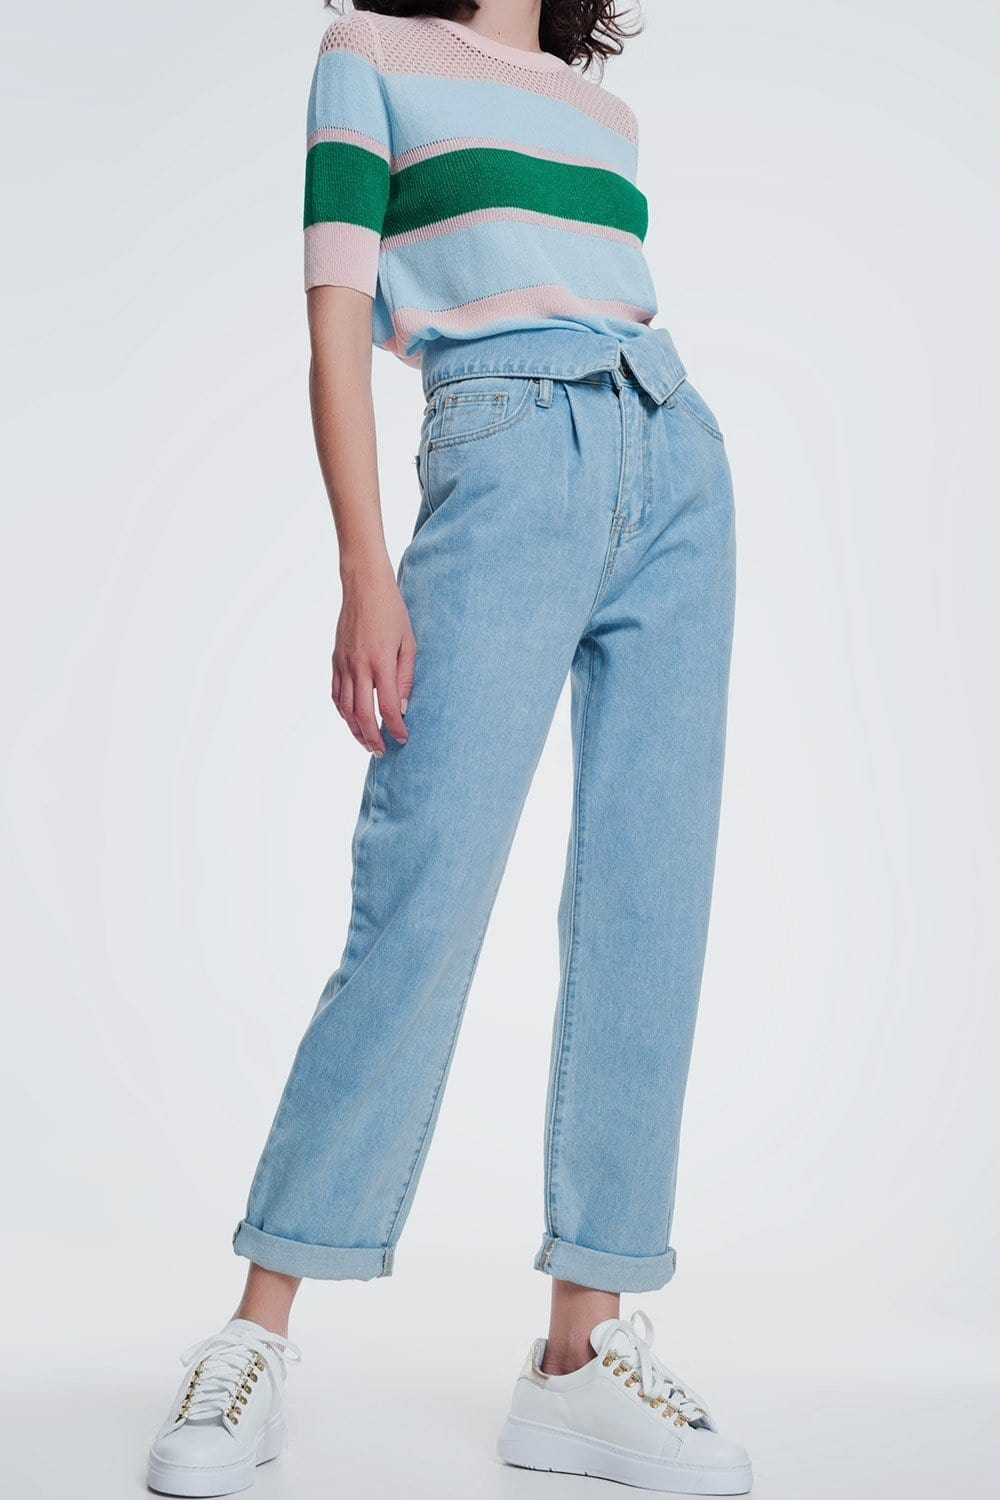 Q2 Light denim straight jeans with folded waist